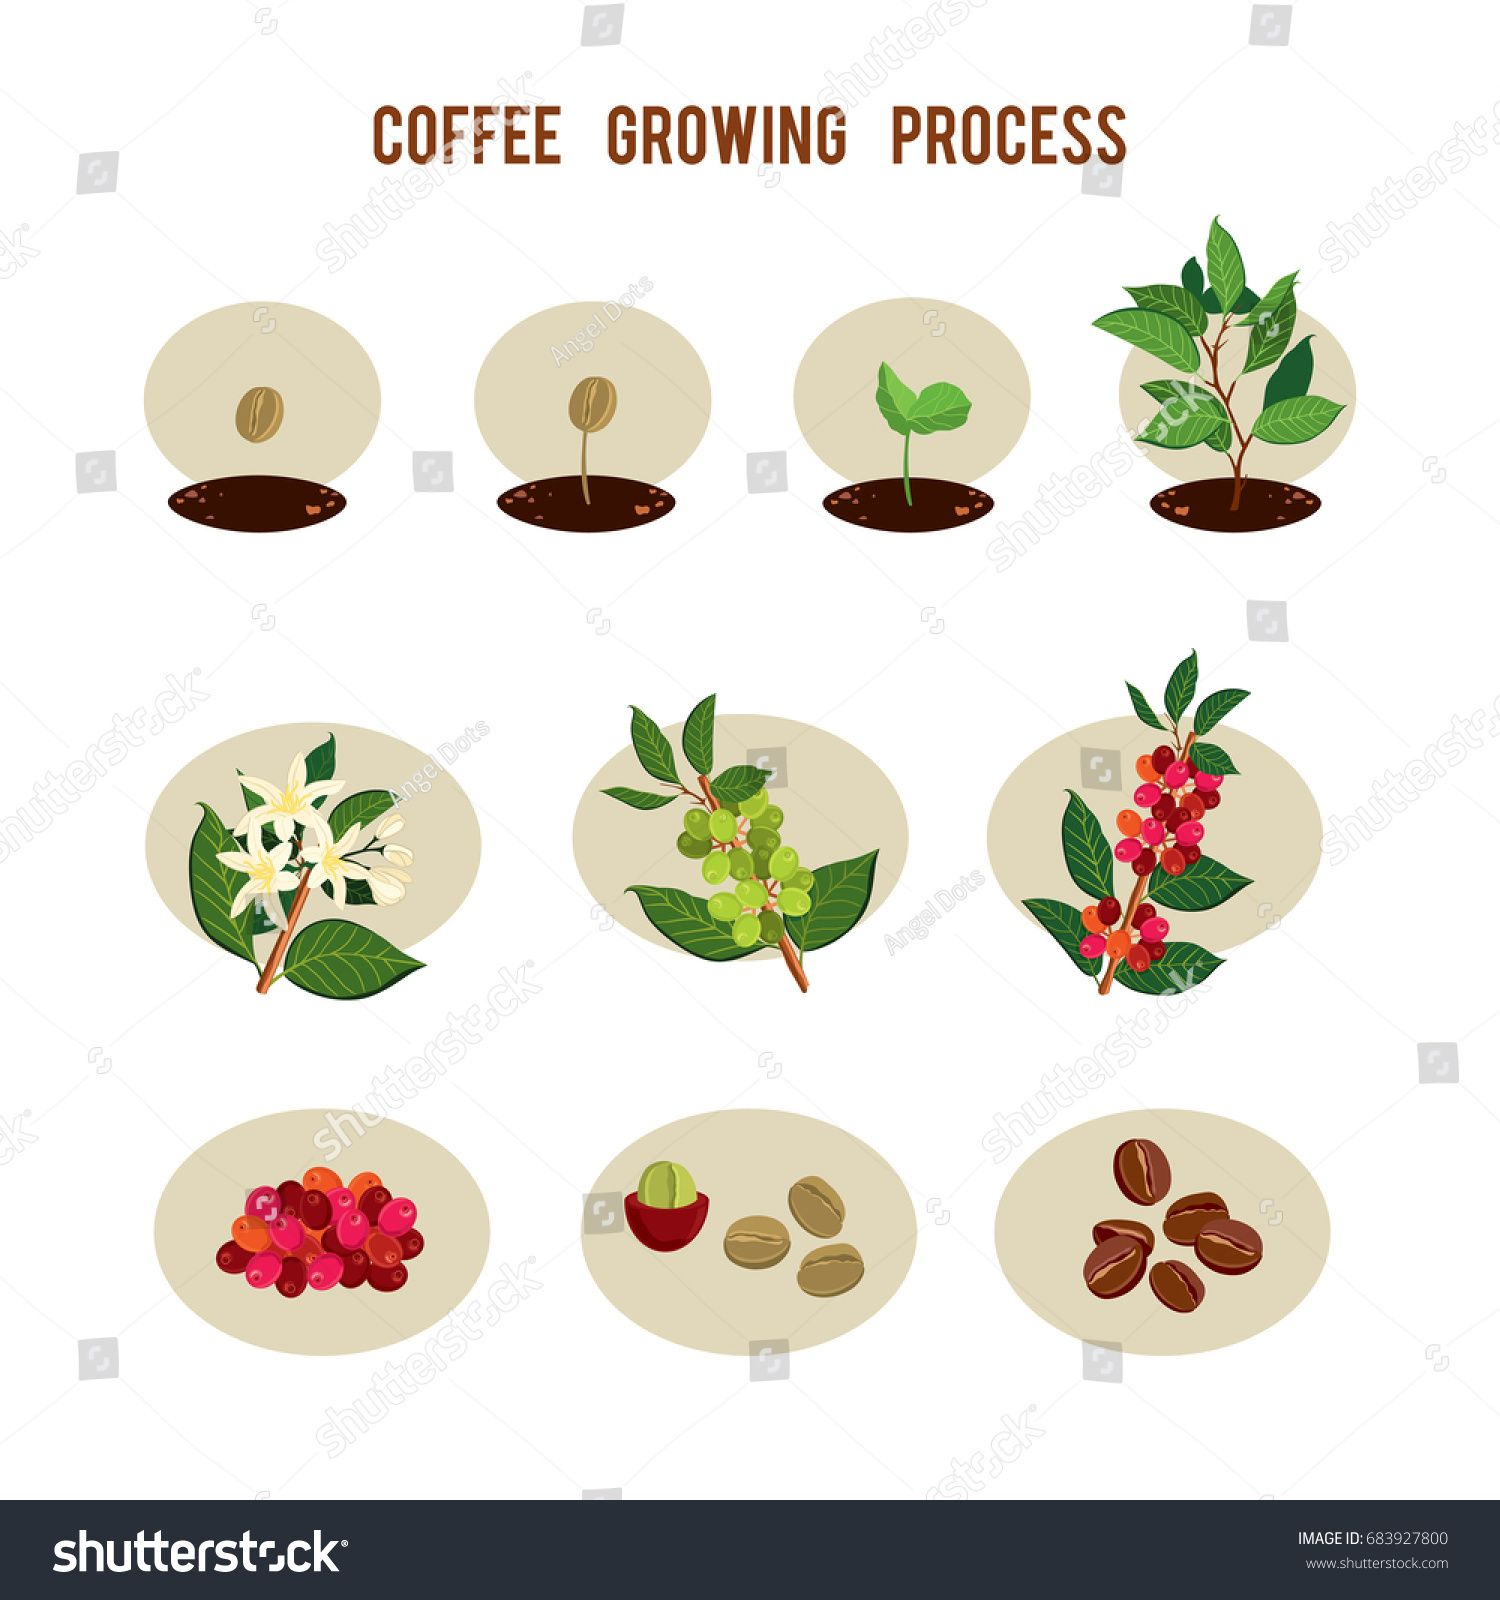 Growth clipart tree sprout. Plant seed germination stages